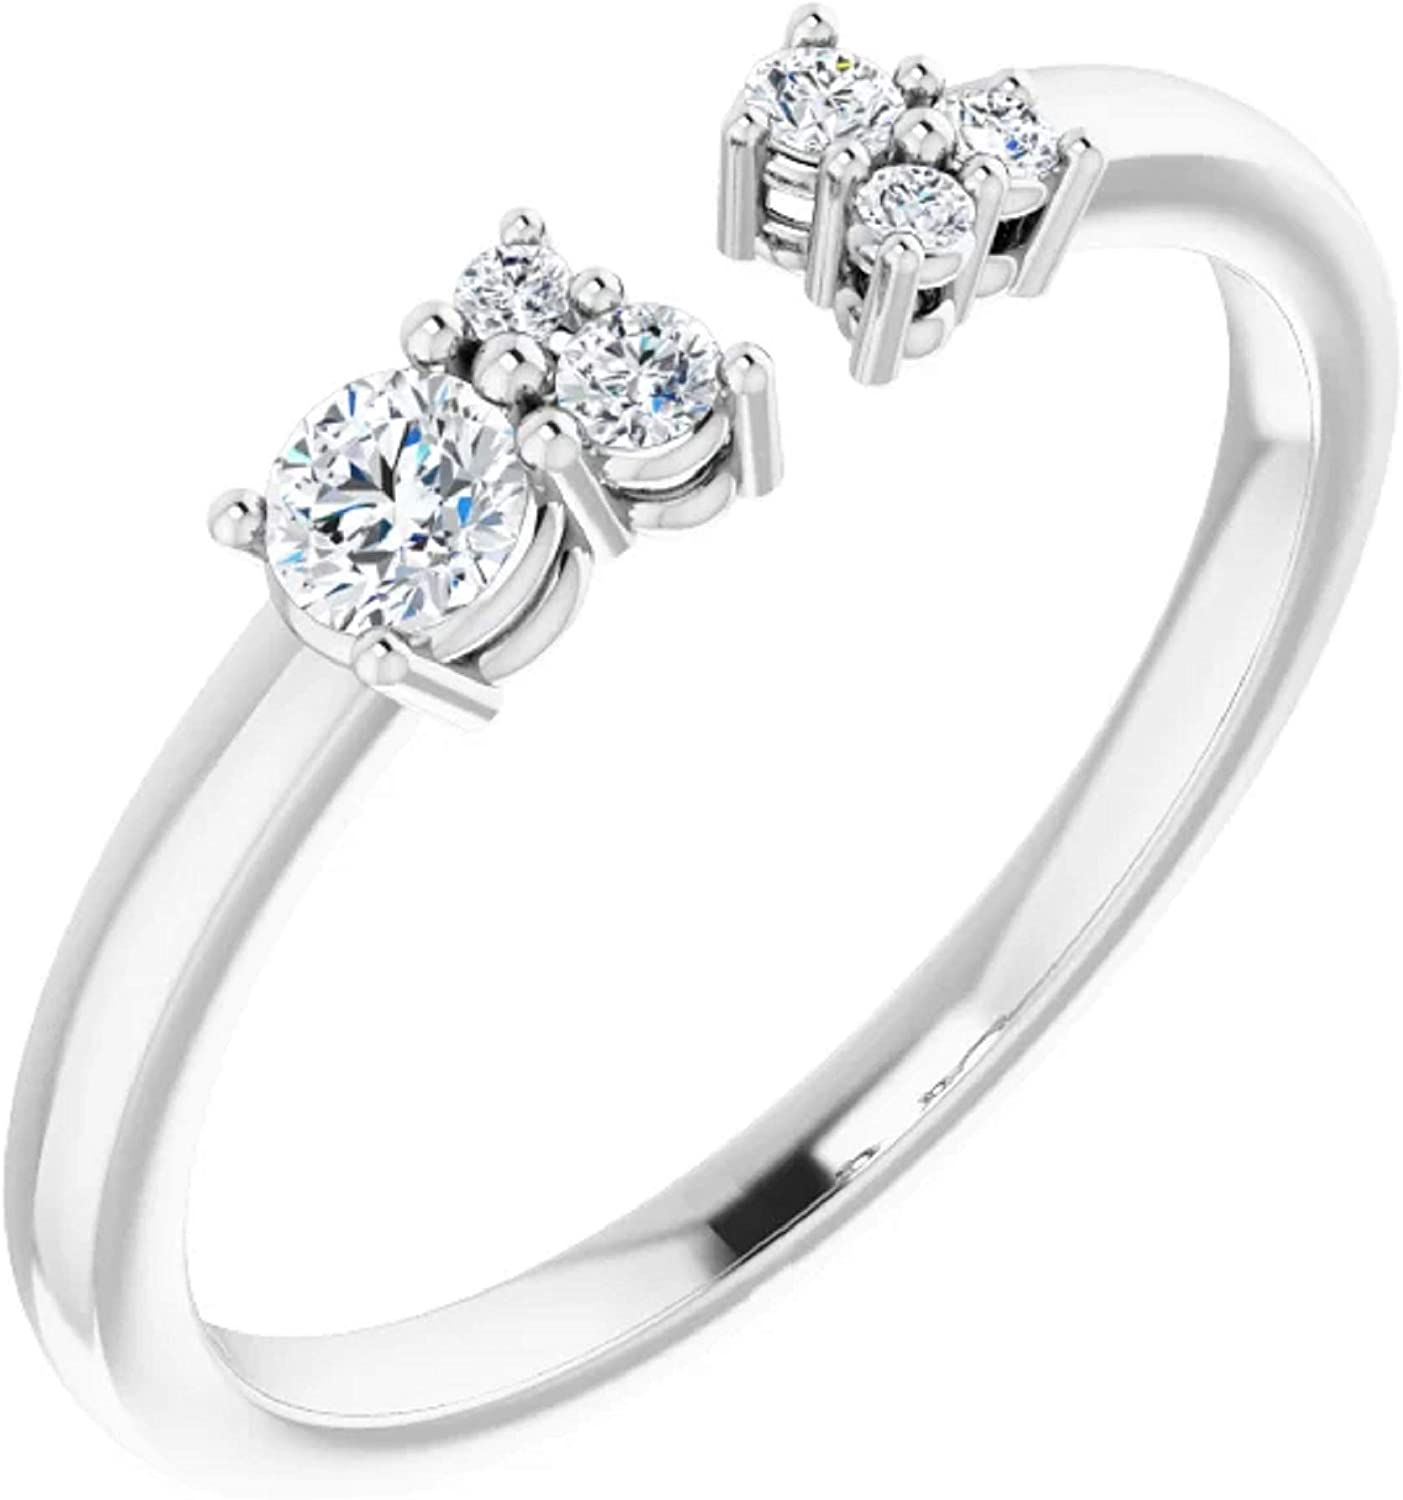 14K White Gold 1 Max 52% OFF 6 CTW size Ring 9 Space Fort Worth Mall Negative Diamond